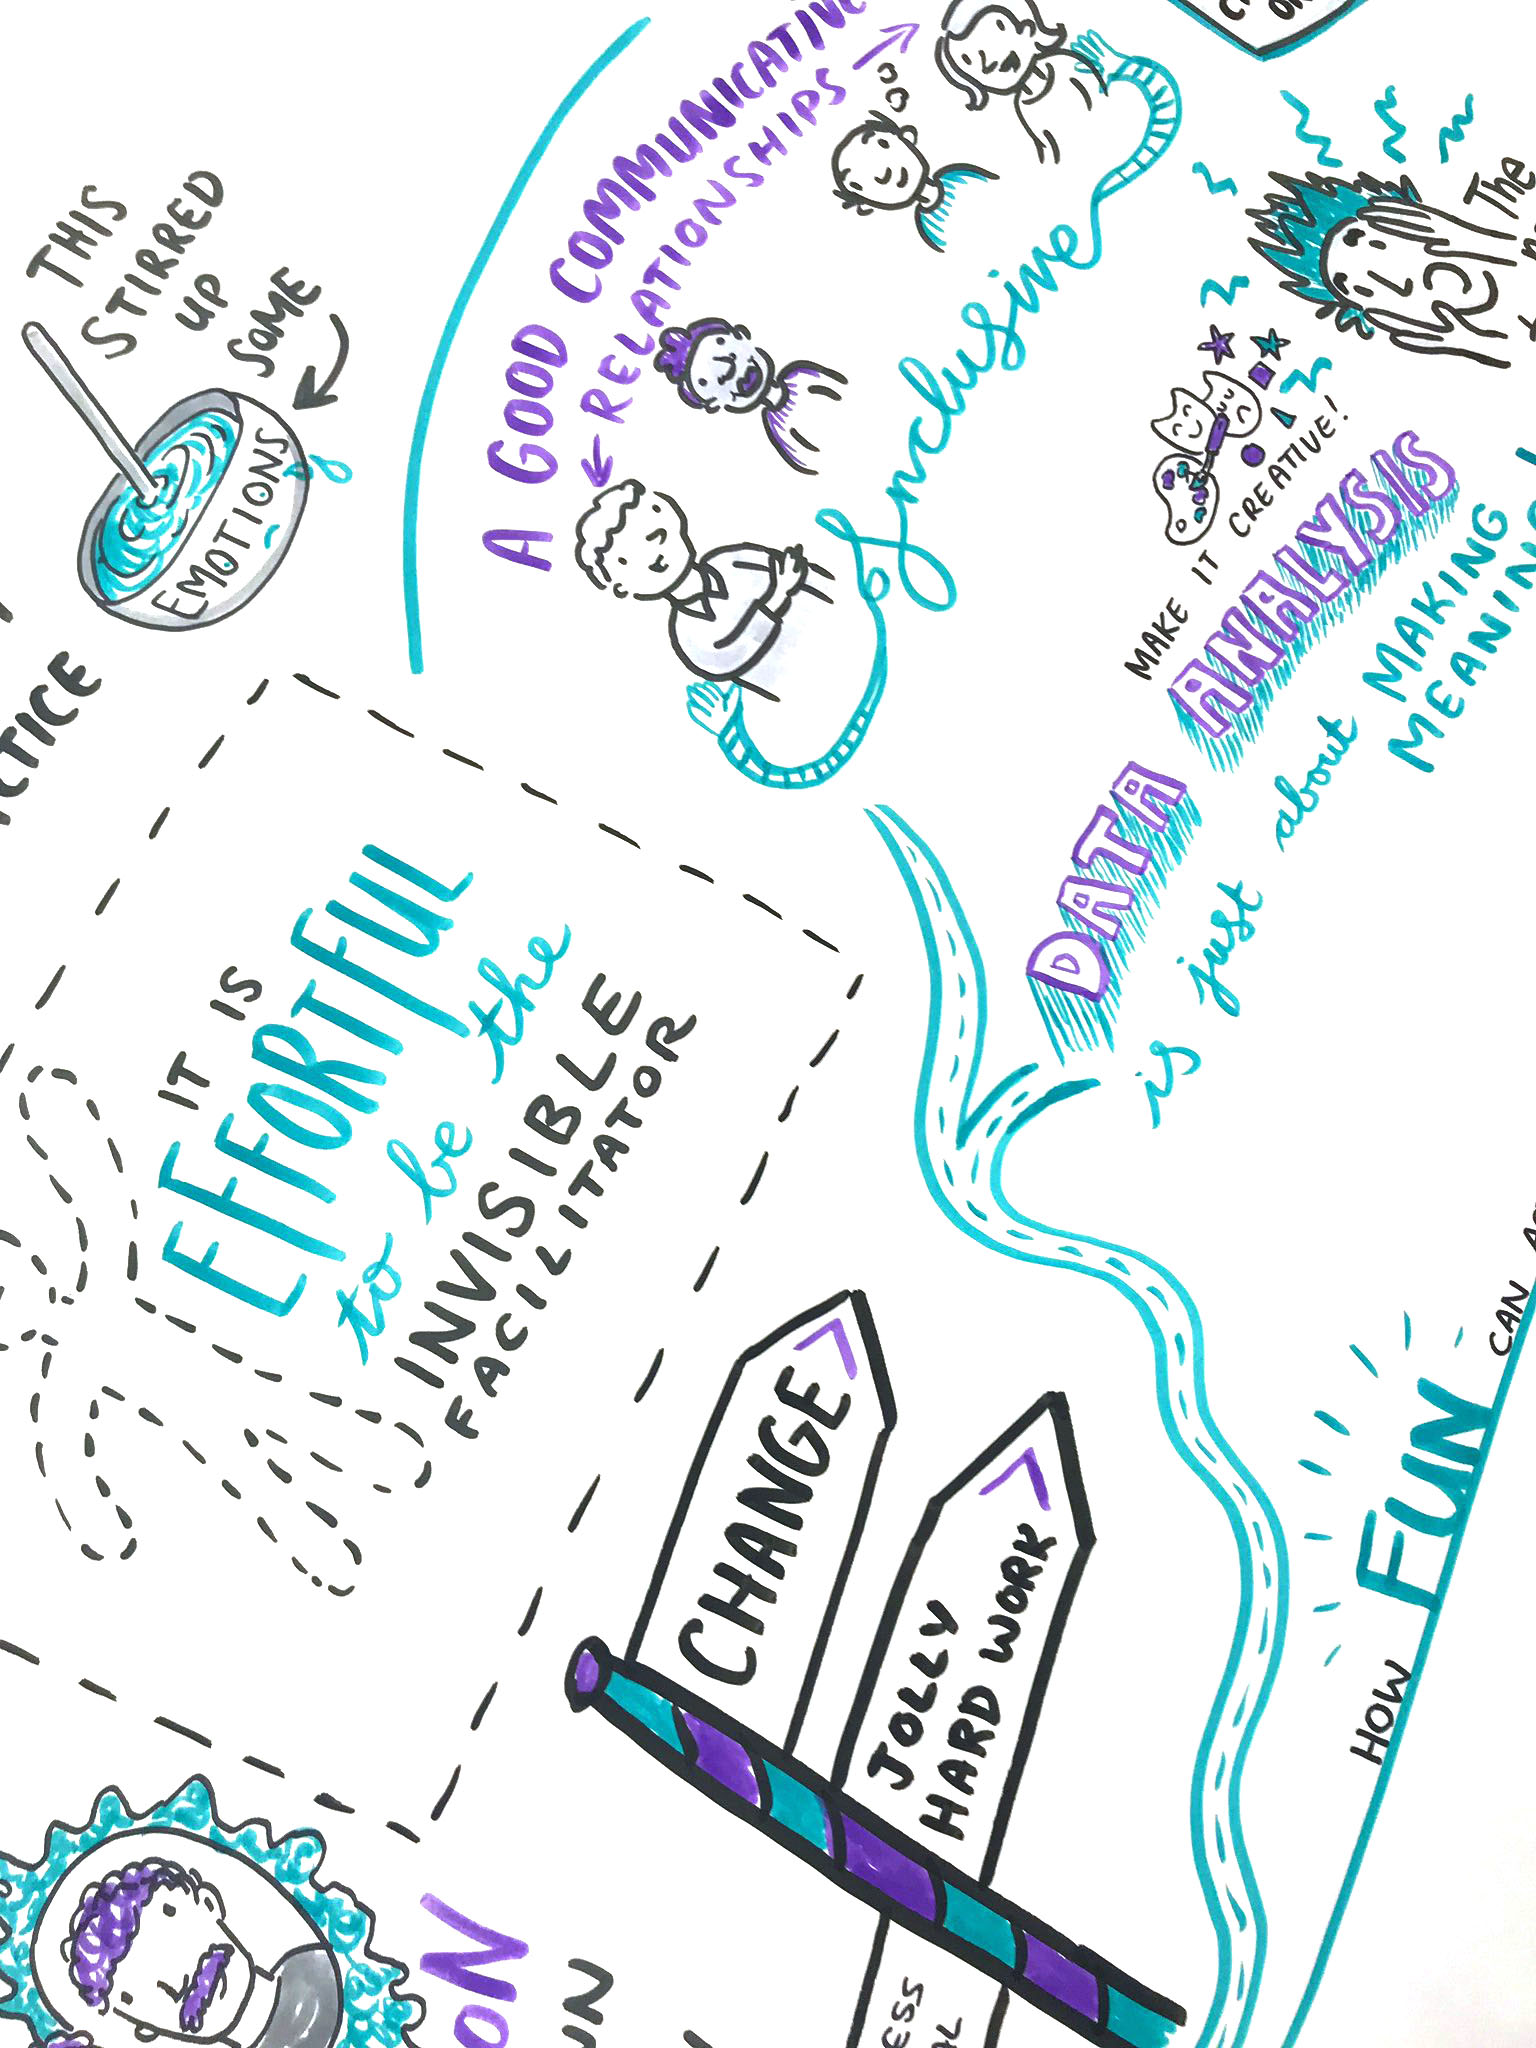 CARN study day graphic recording